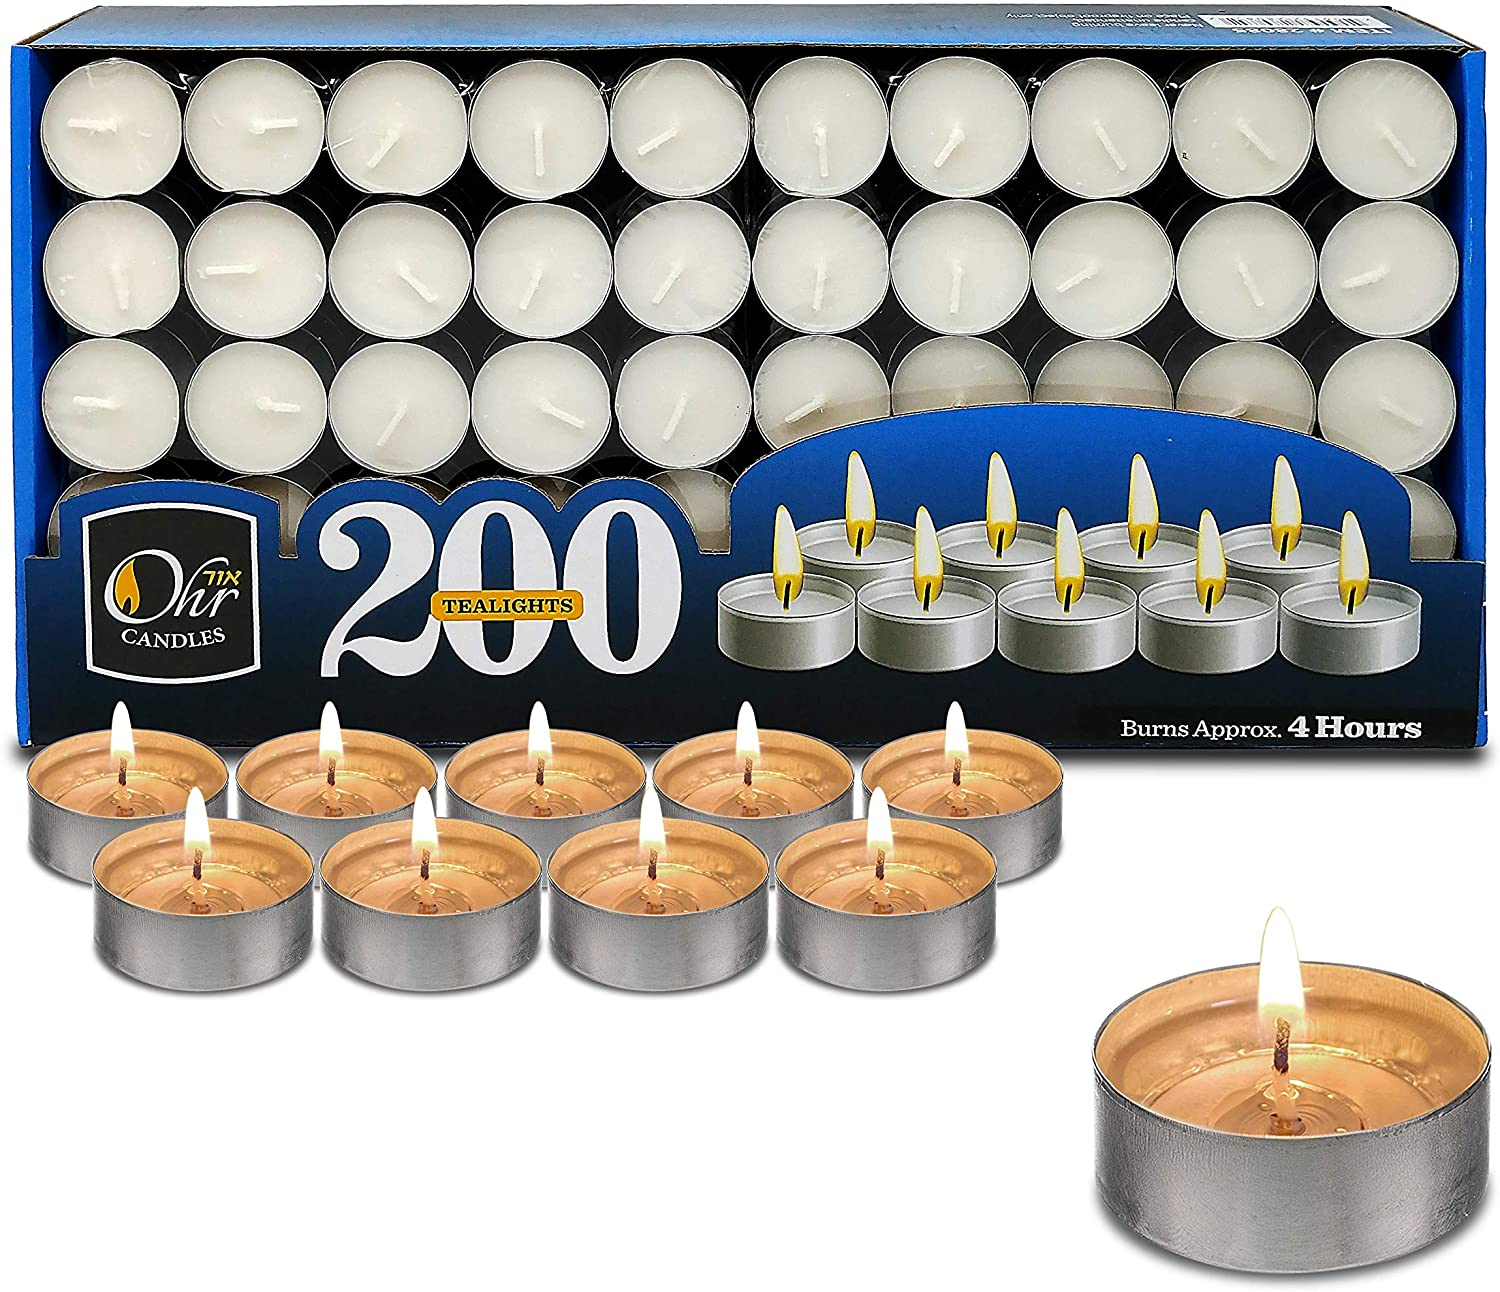 Ohr Tea lowest price Light Candles - 200 Unscented Travel High order White Bulk Pack